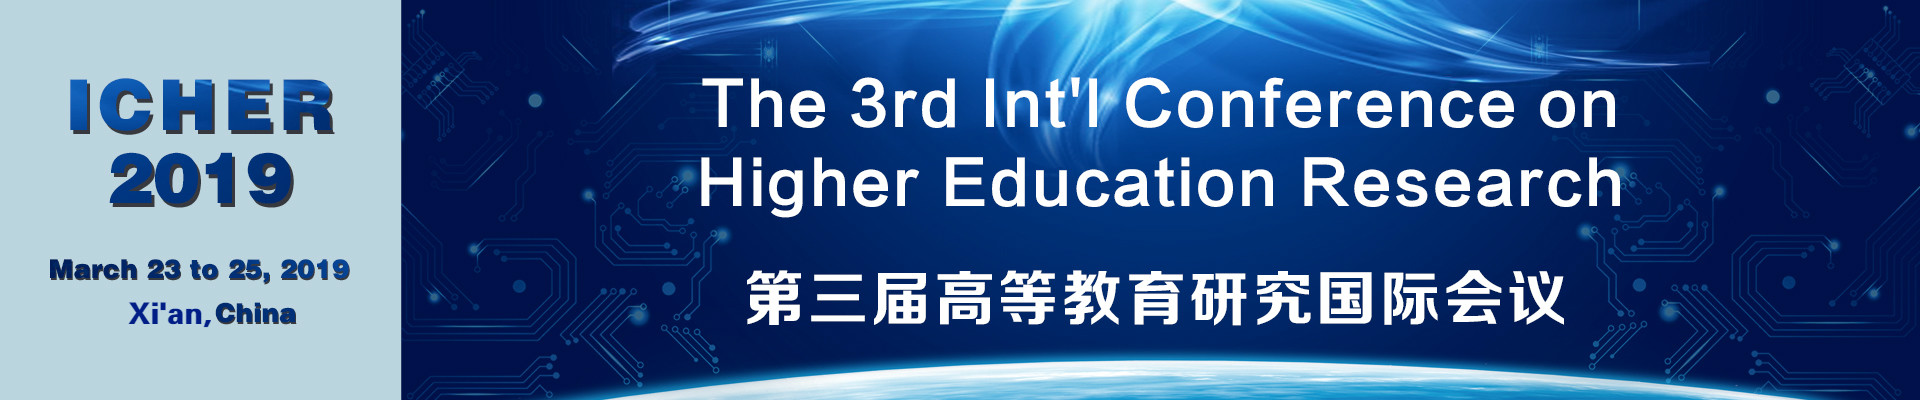 The 3rd Int'l Conference on Higher Education Research (ICHER 2019), Xi'an, Shanxi, China